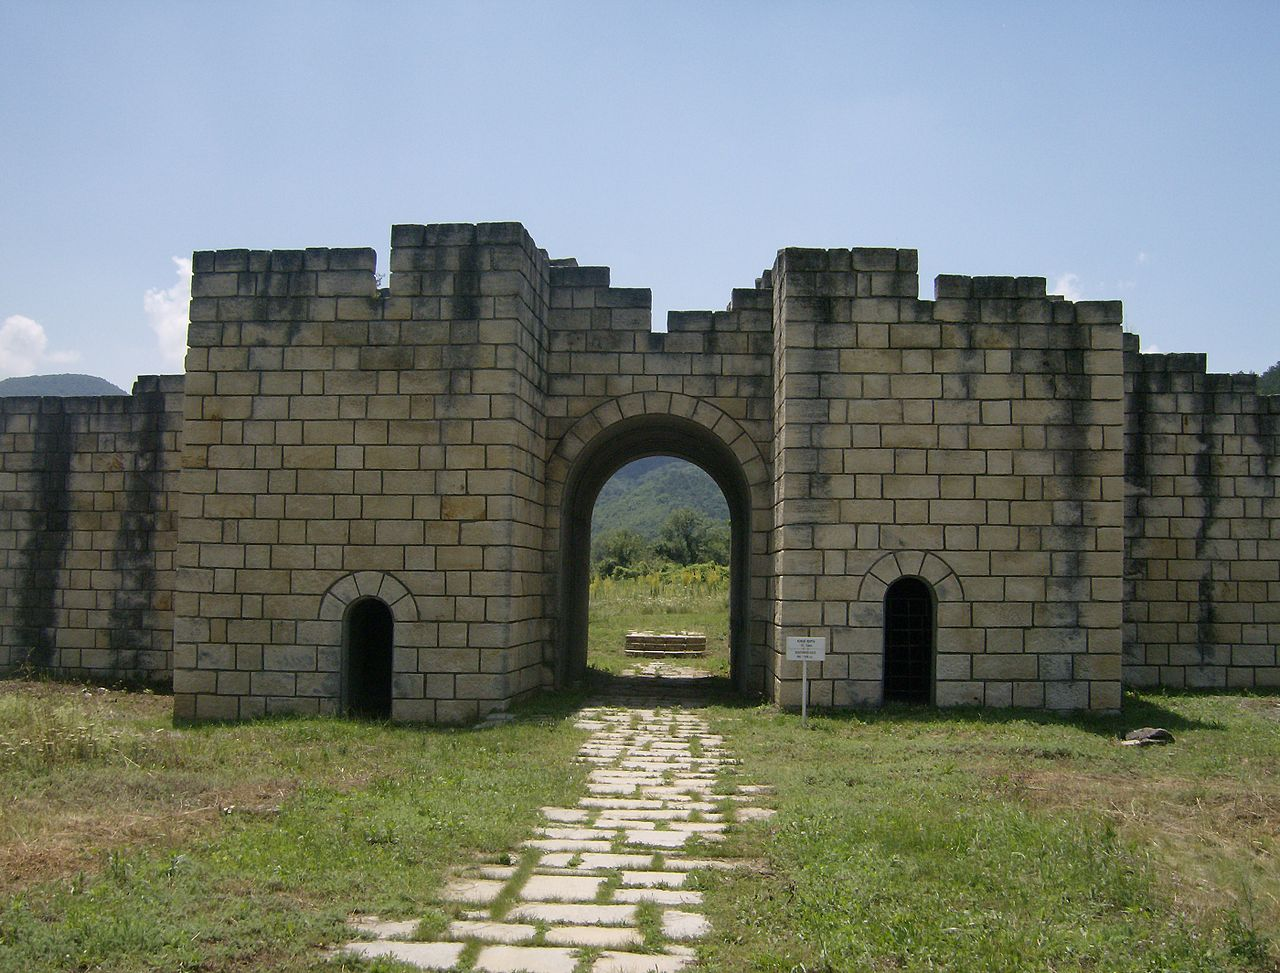 Veliki-Preslav_fortress_main-ancient-Christian-center-in-the-10th-century-on-the-Balkans